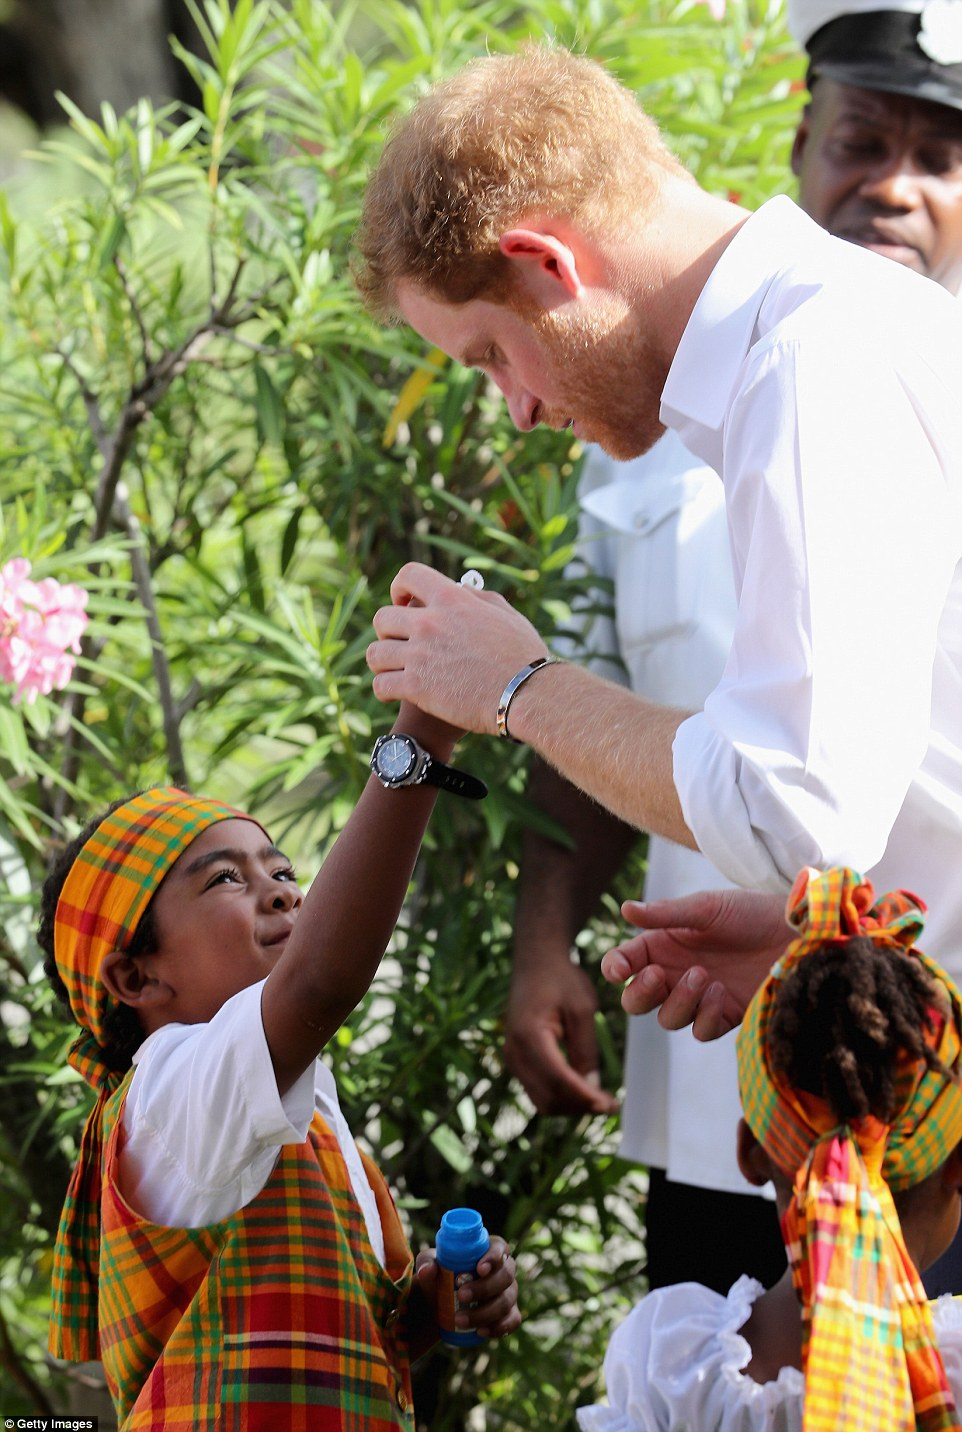 He's a big kid at heart: Prince Harry helped out a smiling child blow bubbles